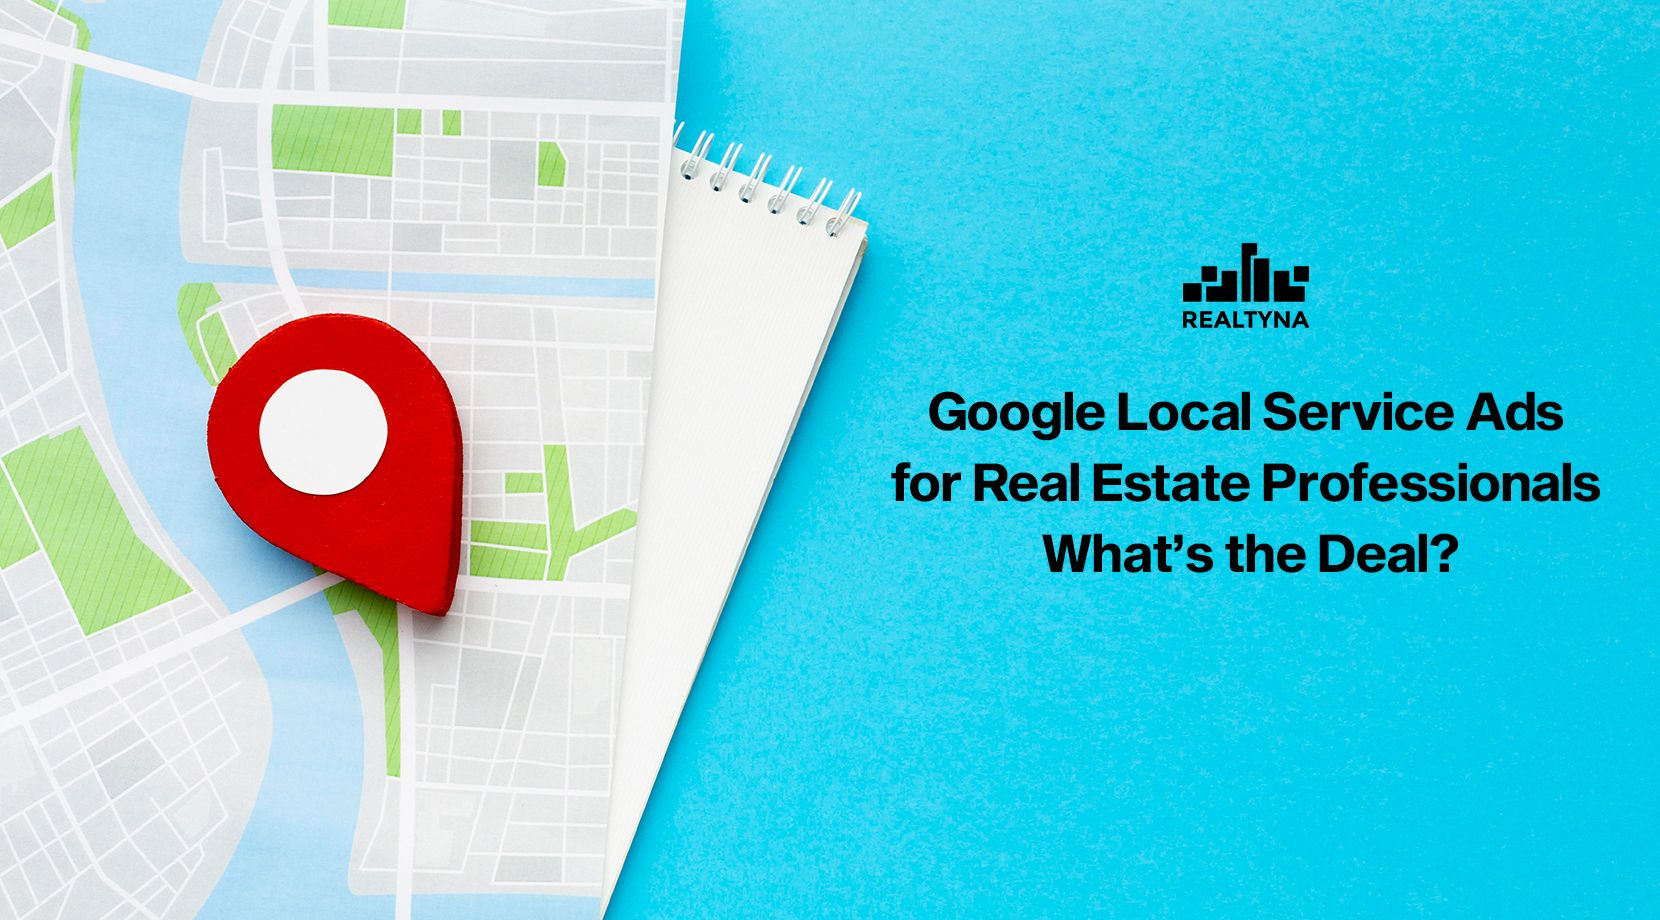 Google Local Service Ads for Real Estate Professionals: What's the Deal